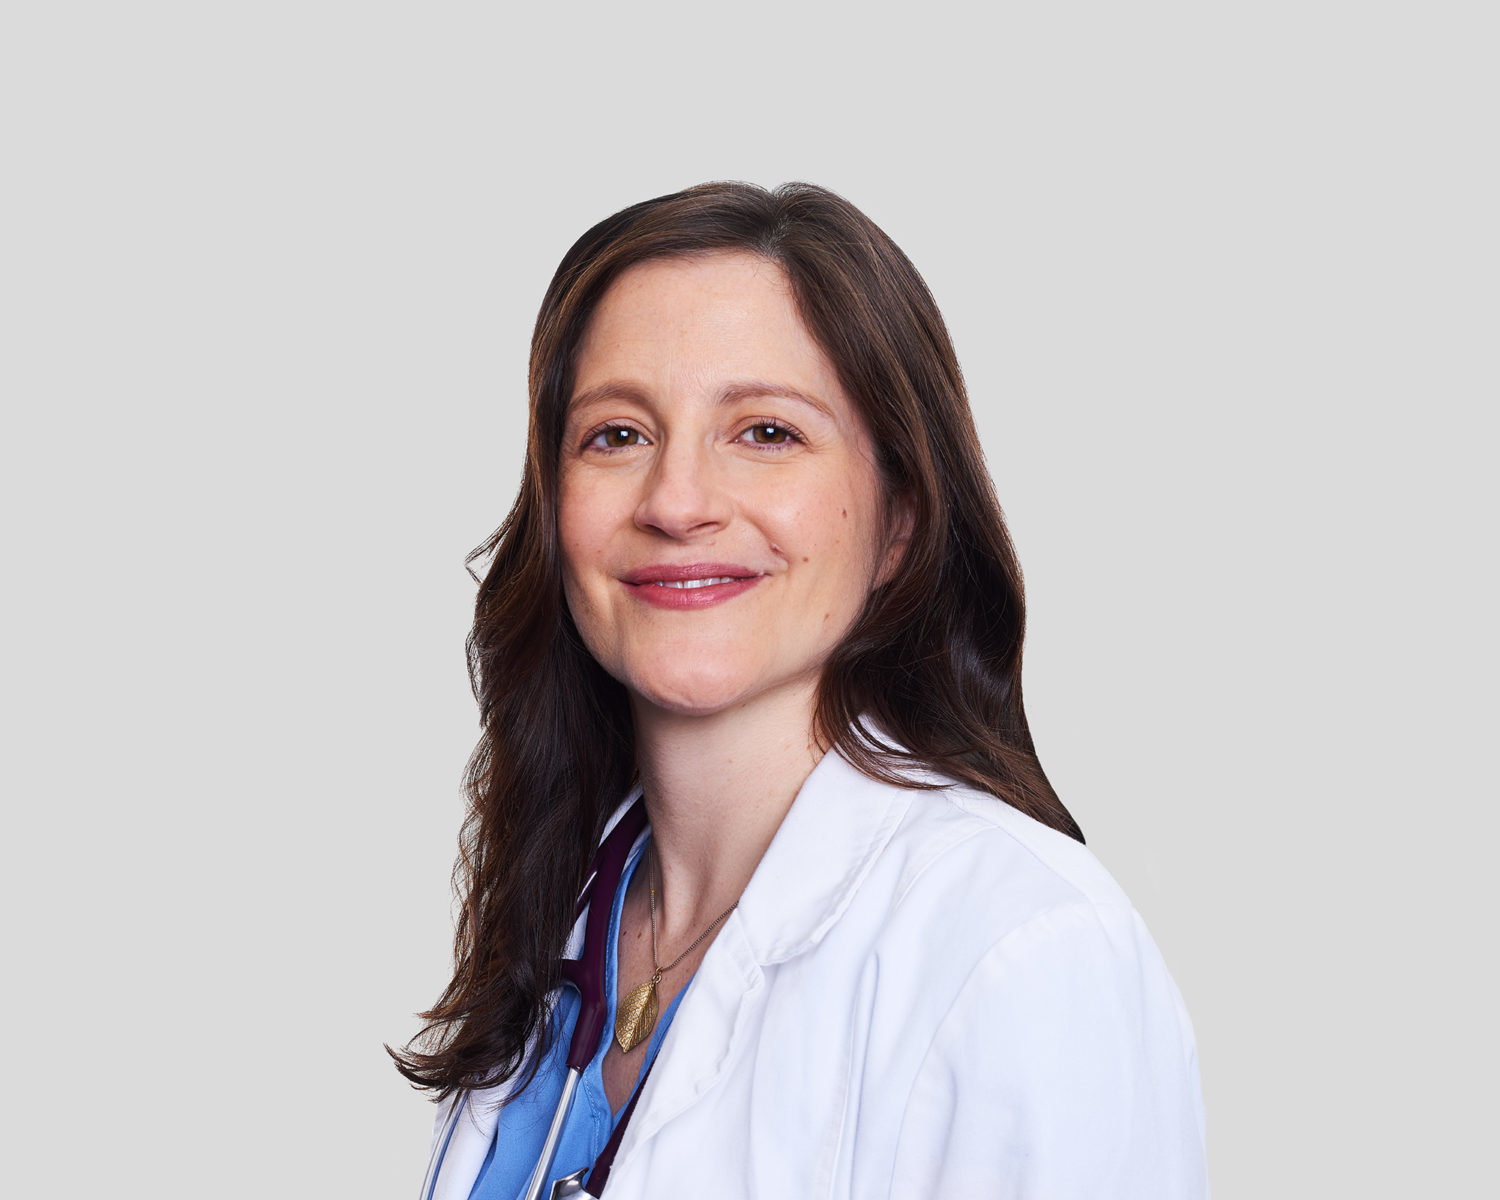 Dr. Dava Cazzolli of the Animal Medical Center in New York City